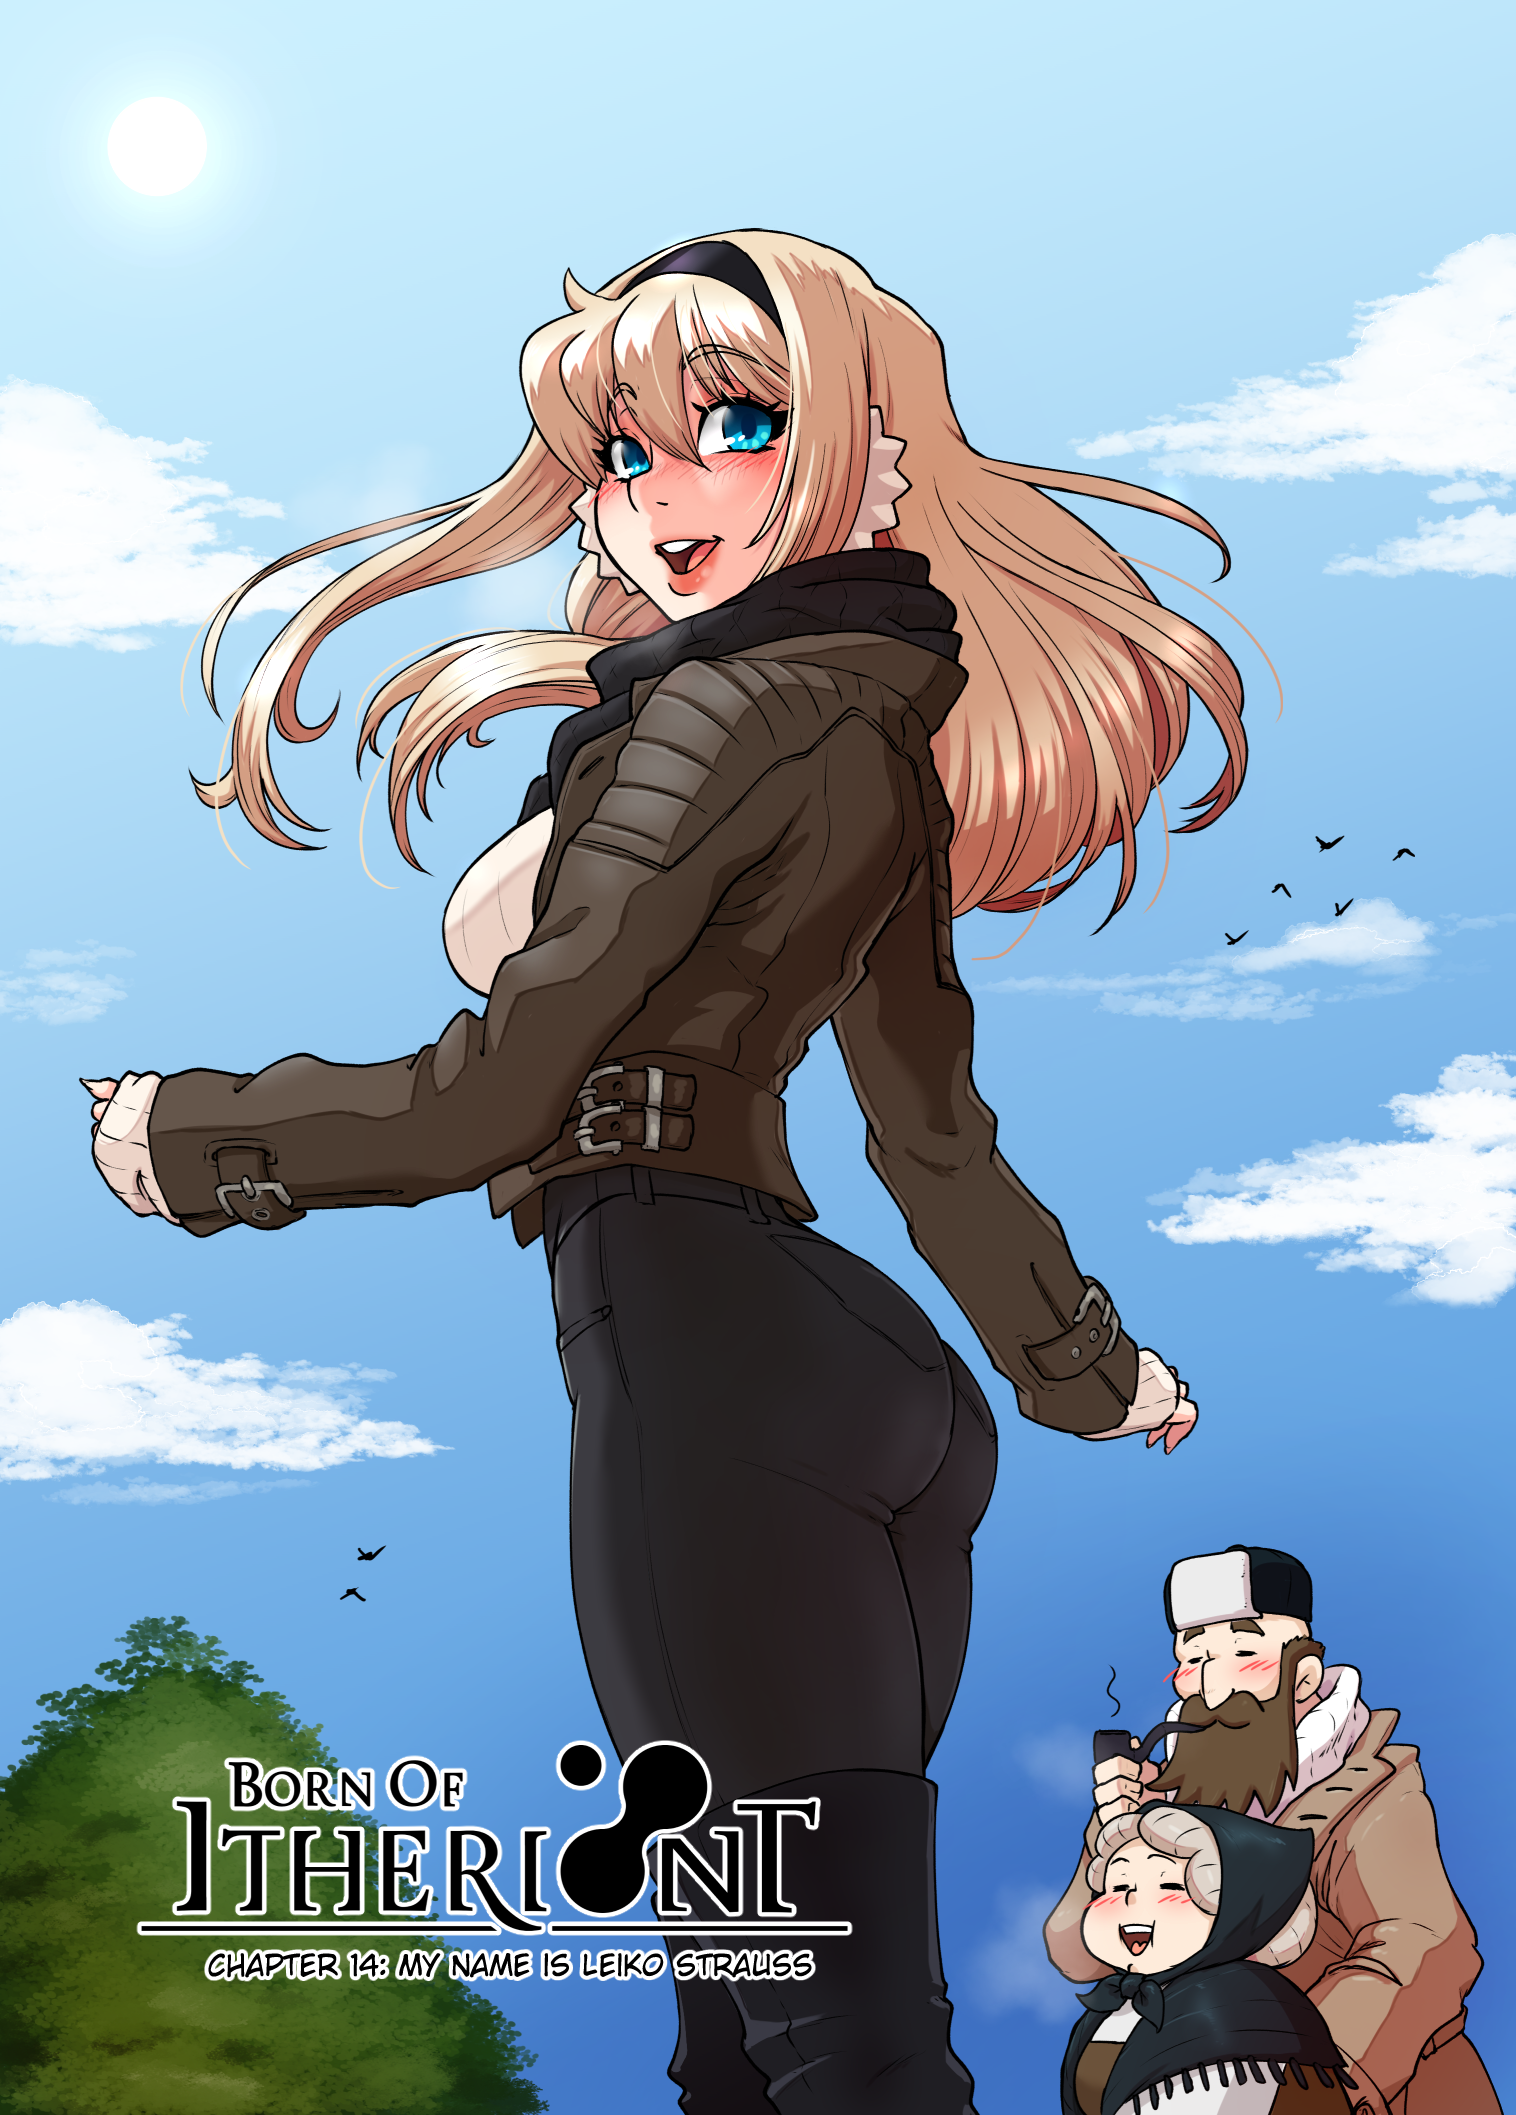 Cover of chapter 14, with fashionable leiko